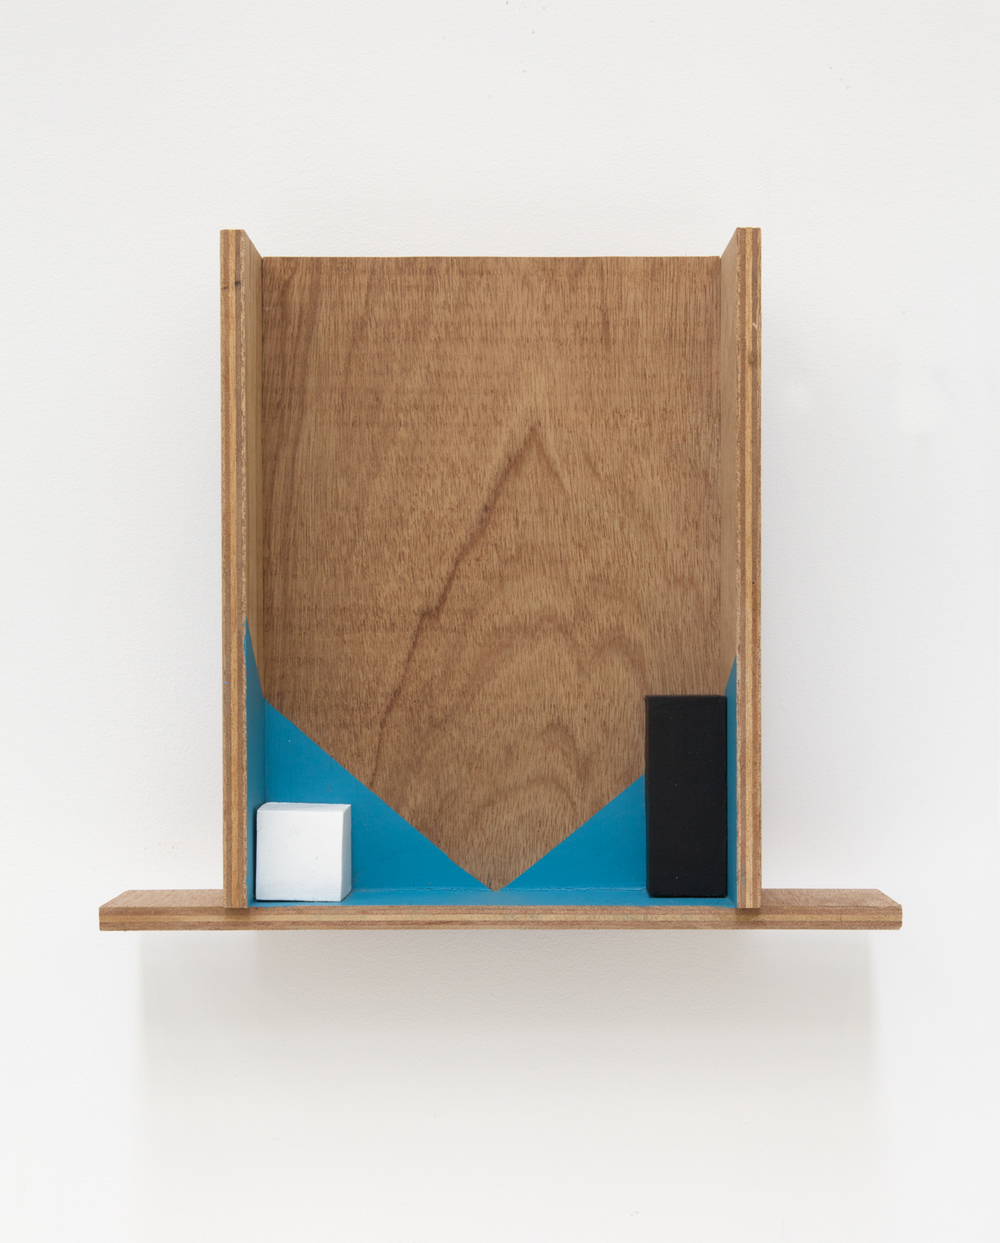 Kishio Suga Emerging Two Corners 2008 Plywood, wood, and  paint 15 ¾  x 13 ⅜  x 4 ⅛ in KS006